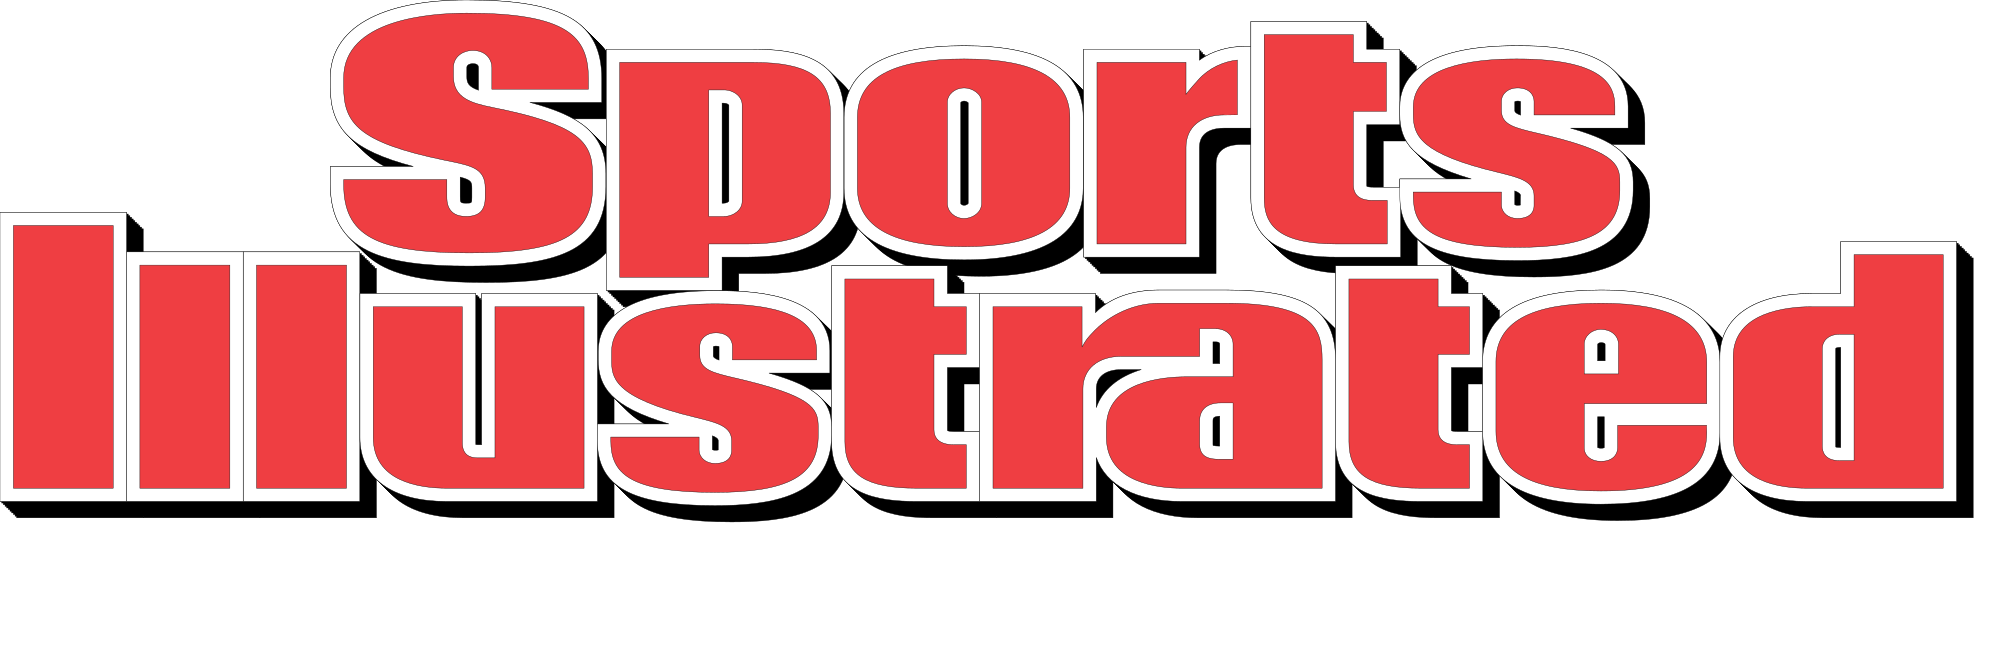 Sports illustrated logo png. File sportsillustrated svg wikimedia